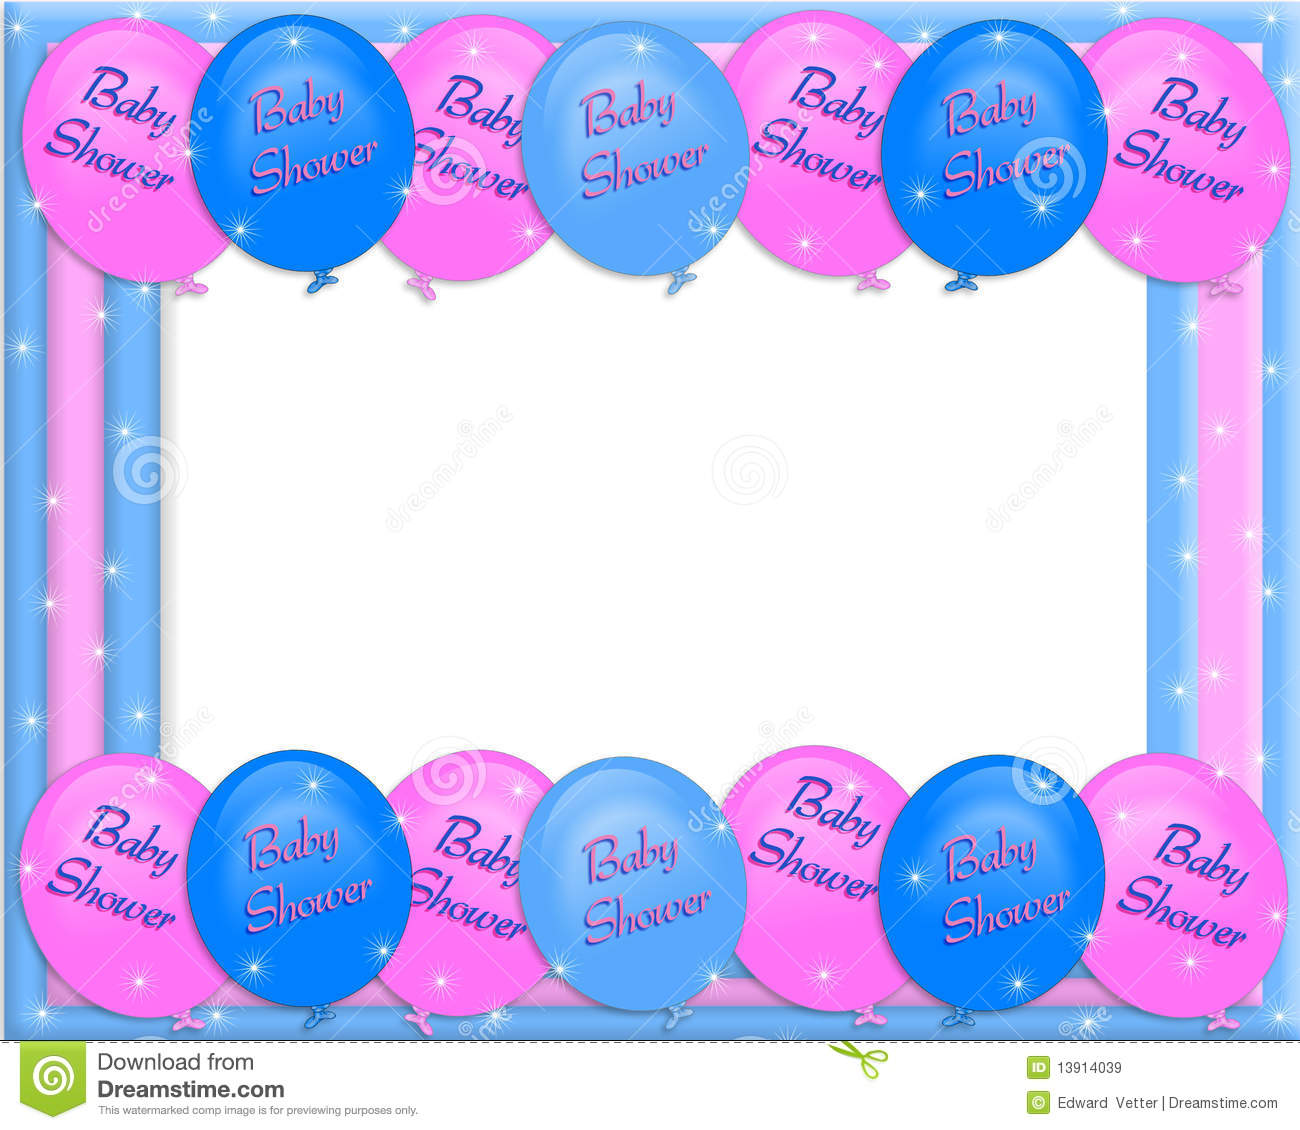 Baby Shower Invitation Border Royalty Free Stock Images